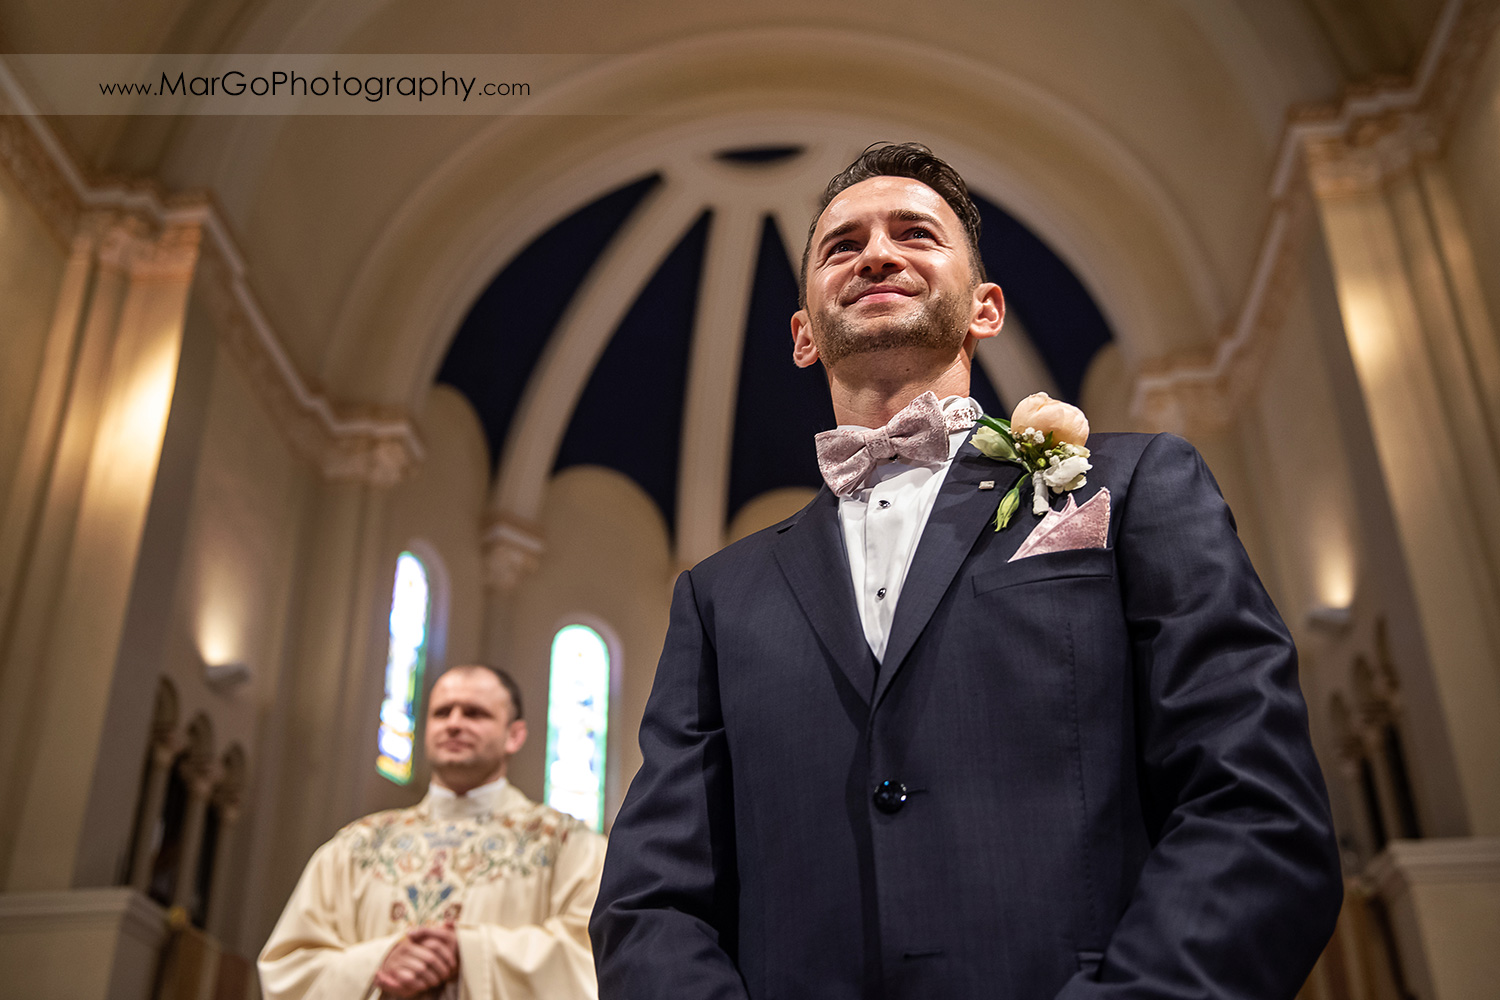 groom waiting for bride walking down the aisle during wedding ceremony at Oakland Church of Saint Leo the Great